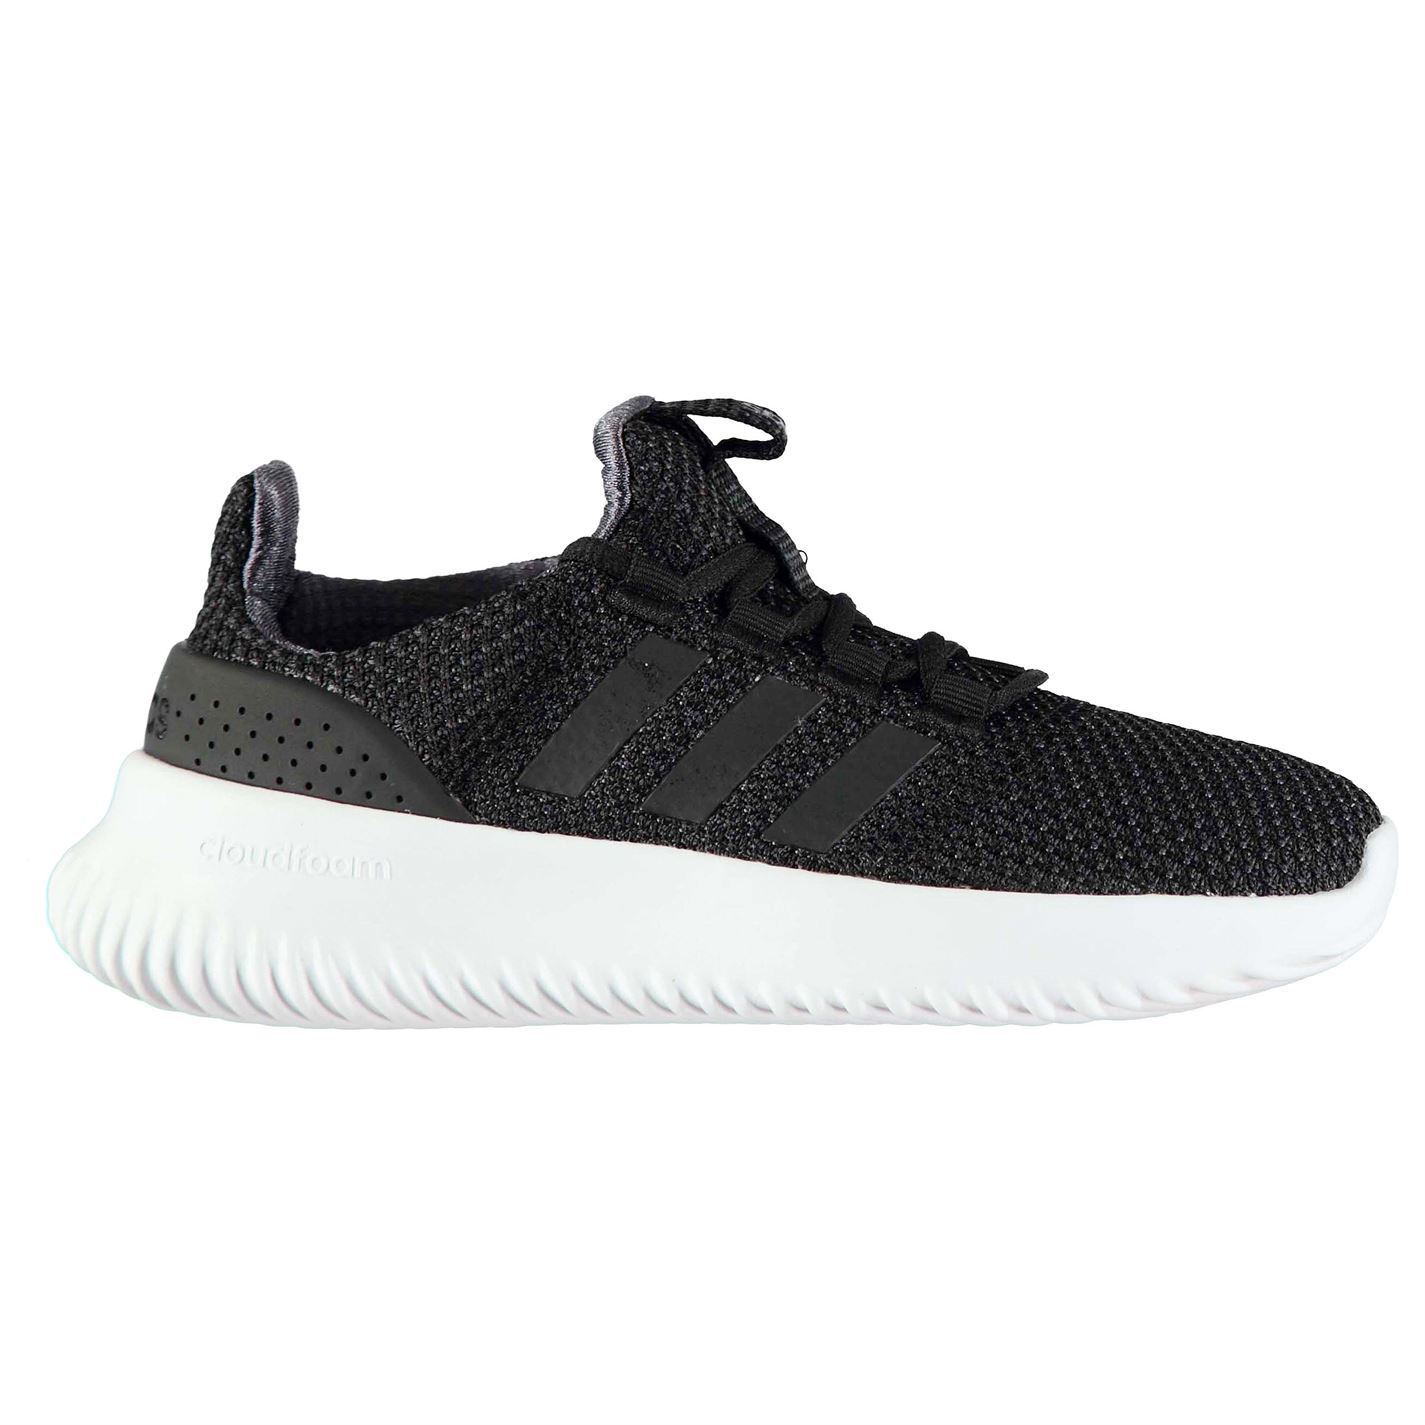 Details about adidas CloudFoam Ultimate Trainers Mens Gents Running Shoes Laces Fastened Knit